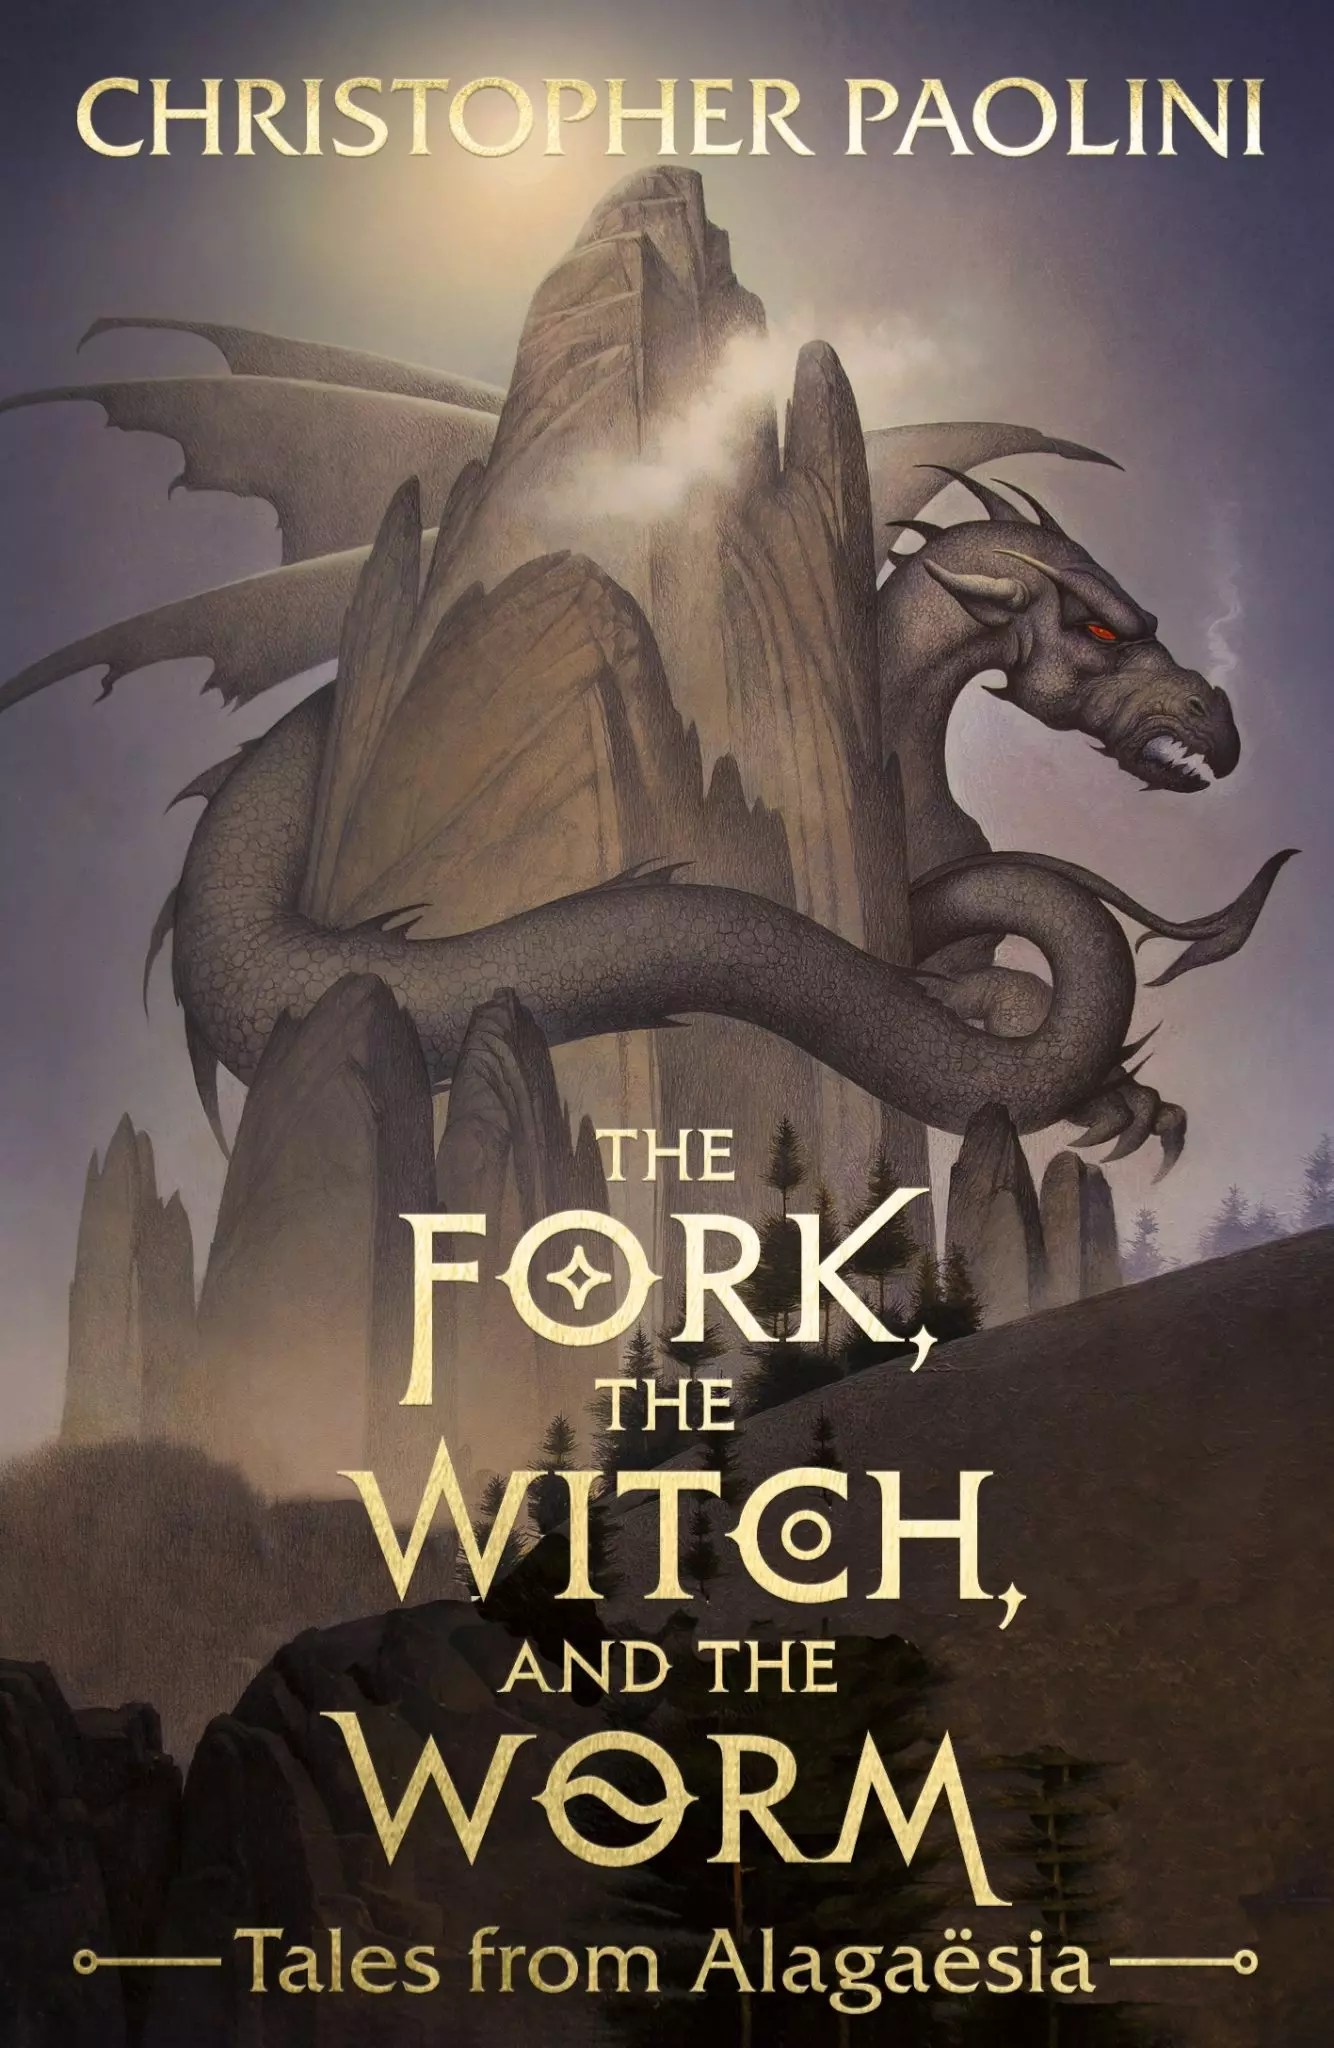 christopher paolini fork witch worm